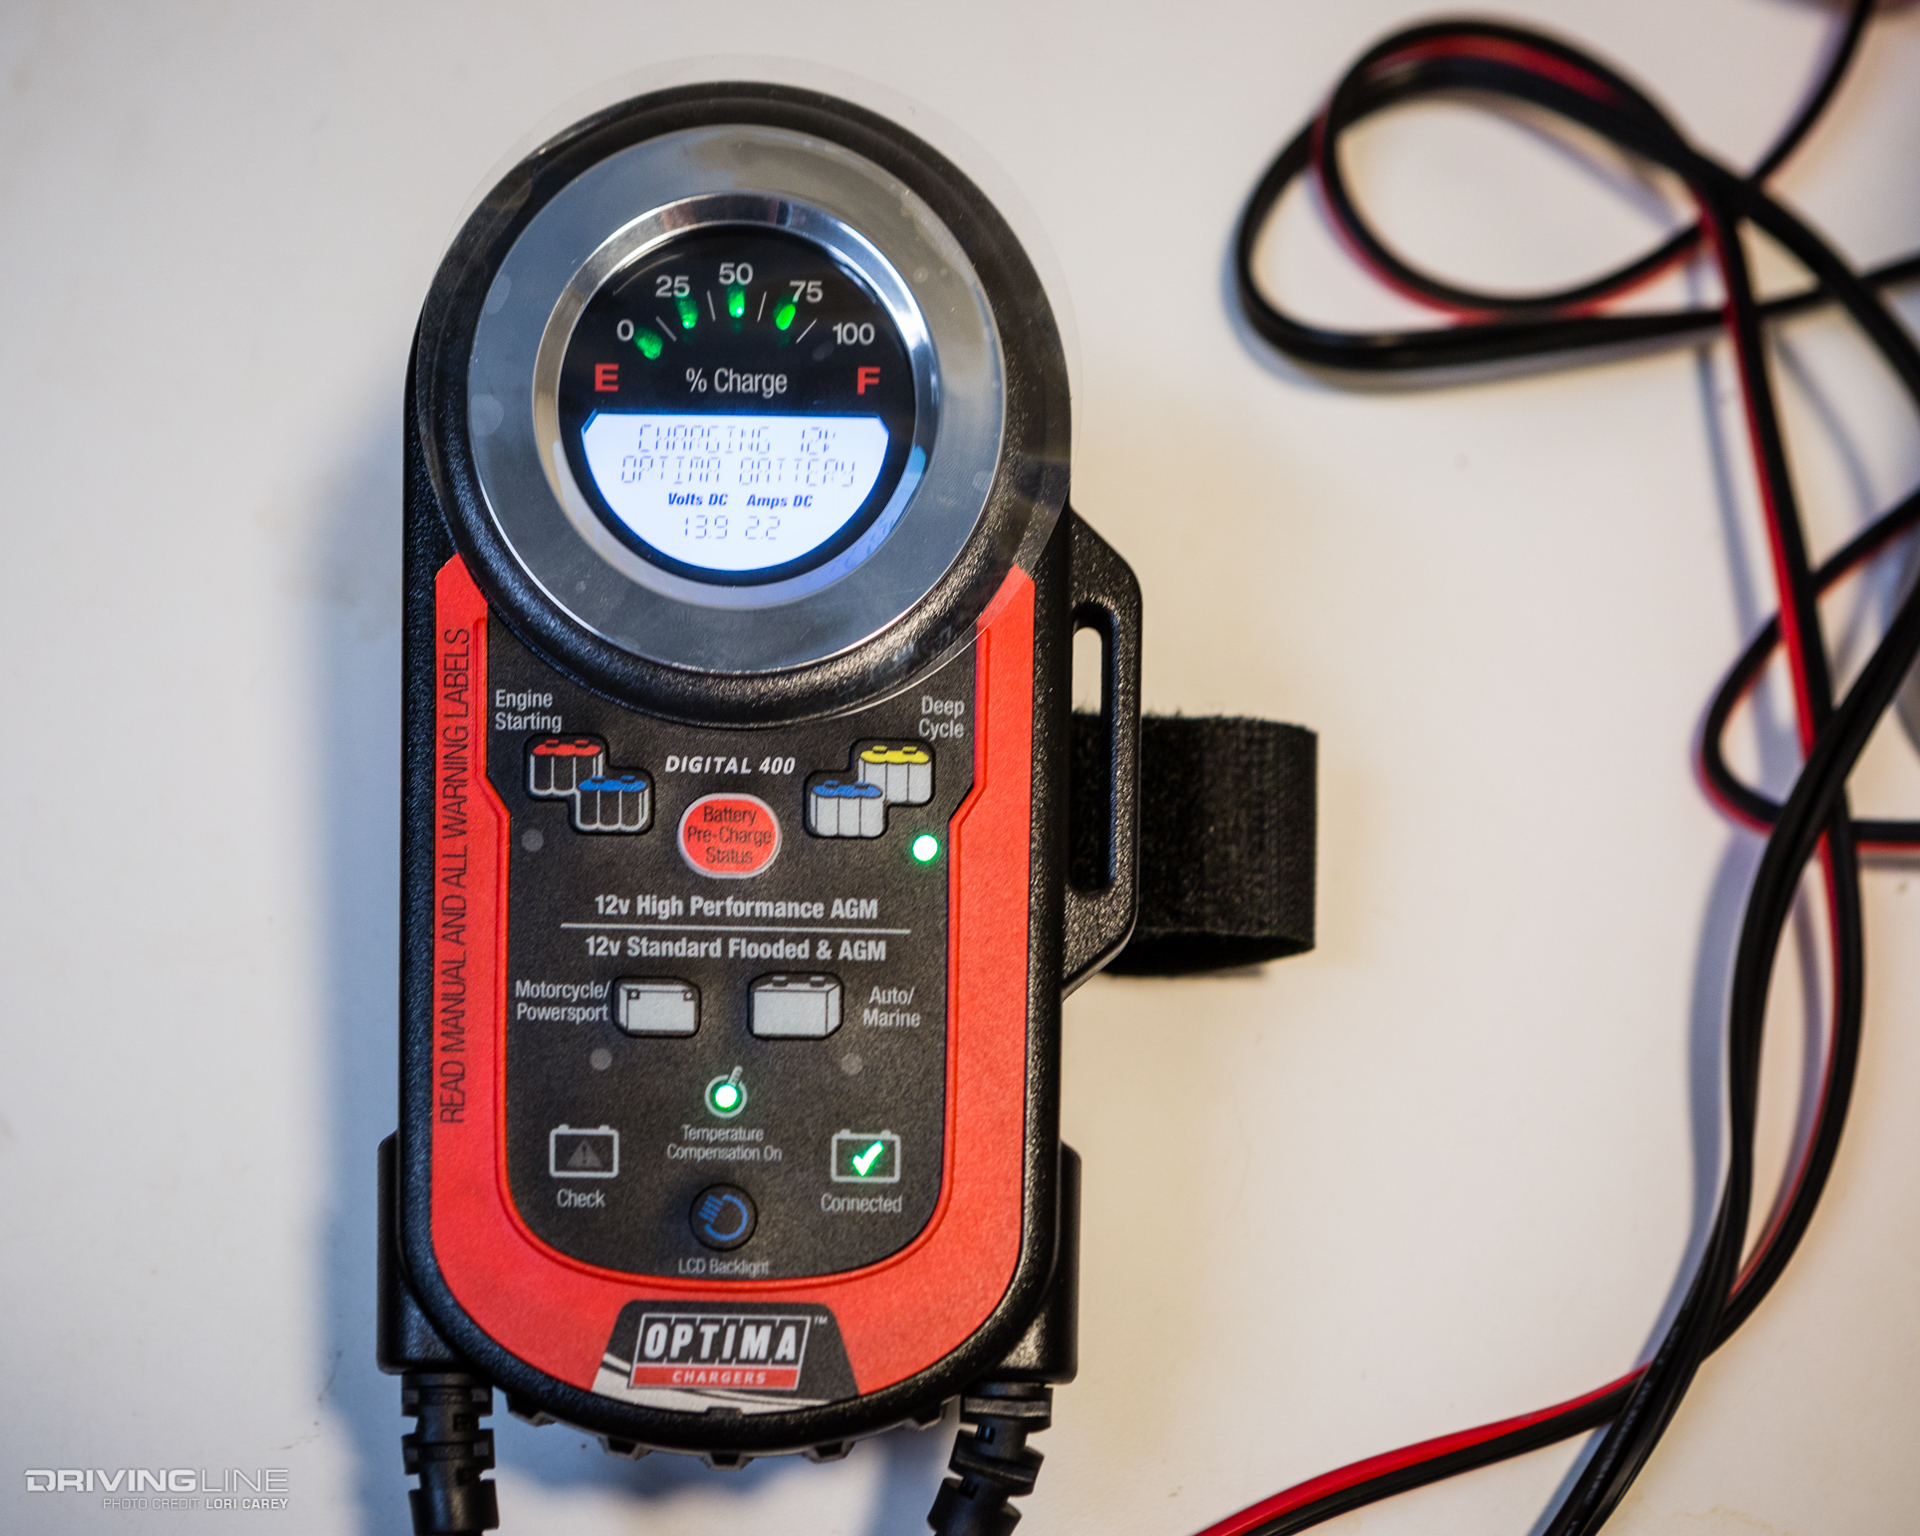 Optima Digital Battery Charger And Maintainers Review